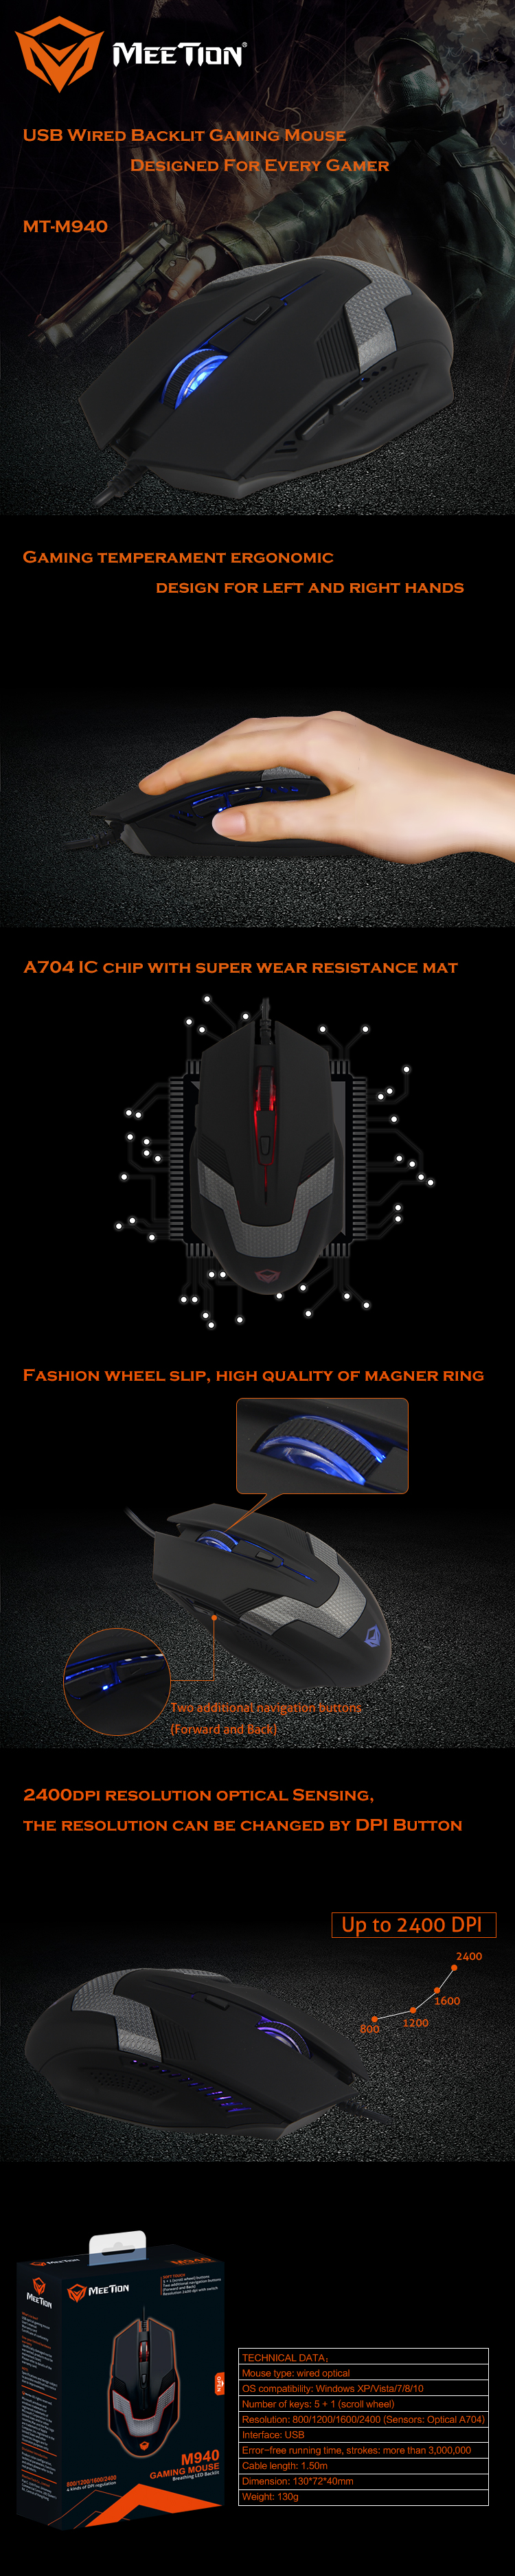 Meetion wholesale best wired mouse in india supplier-1